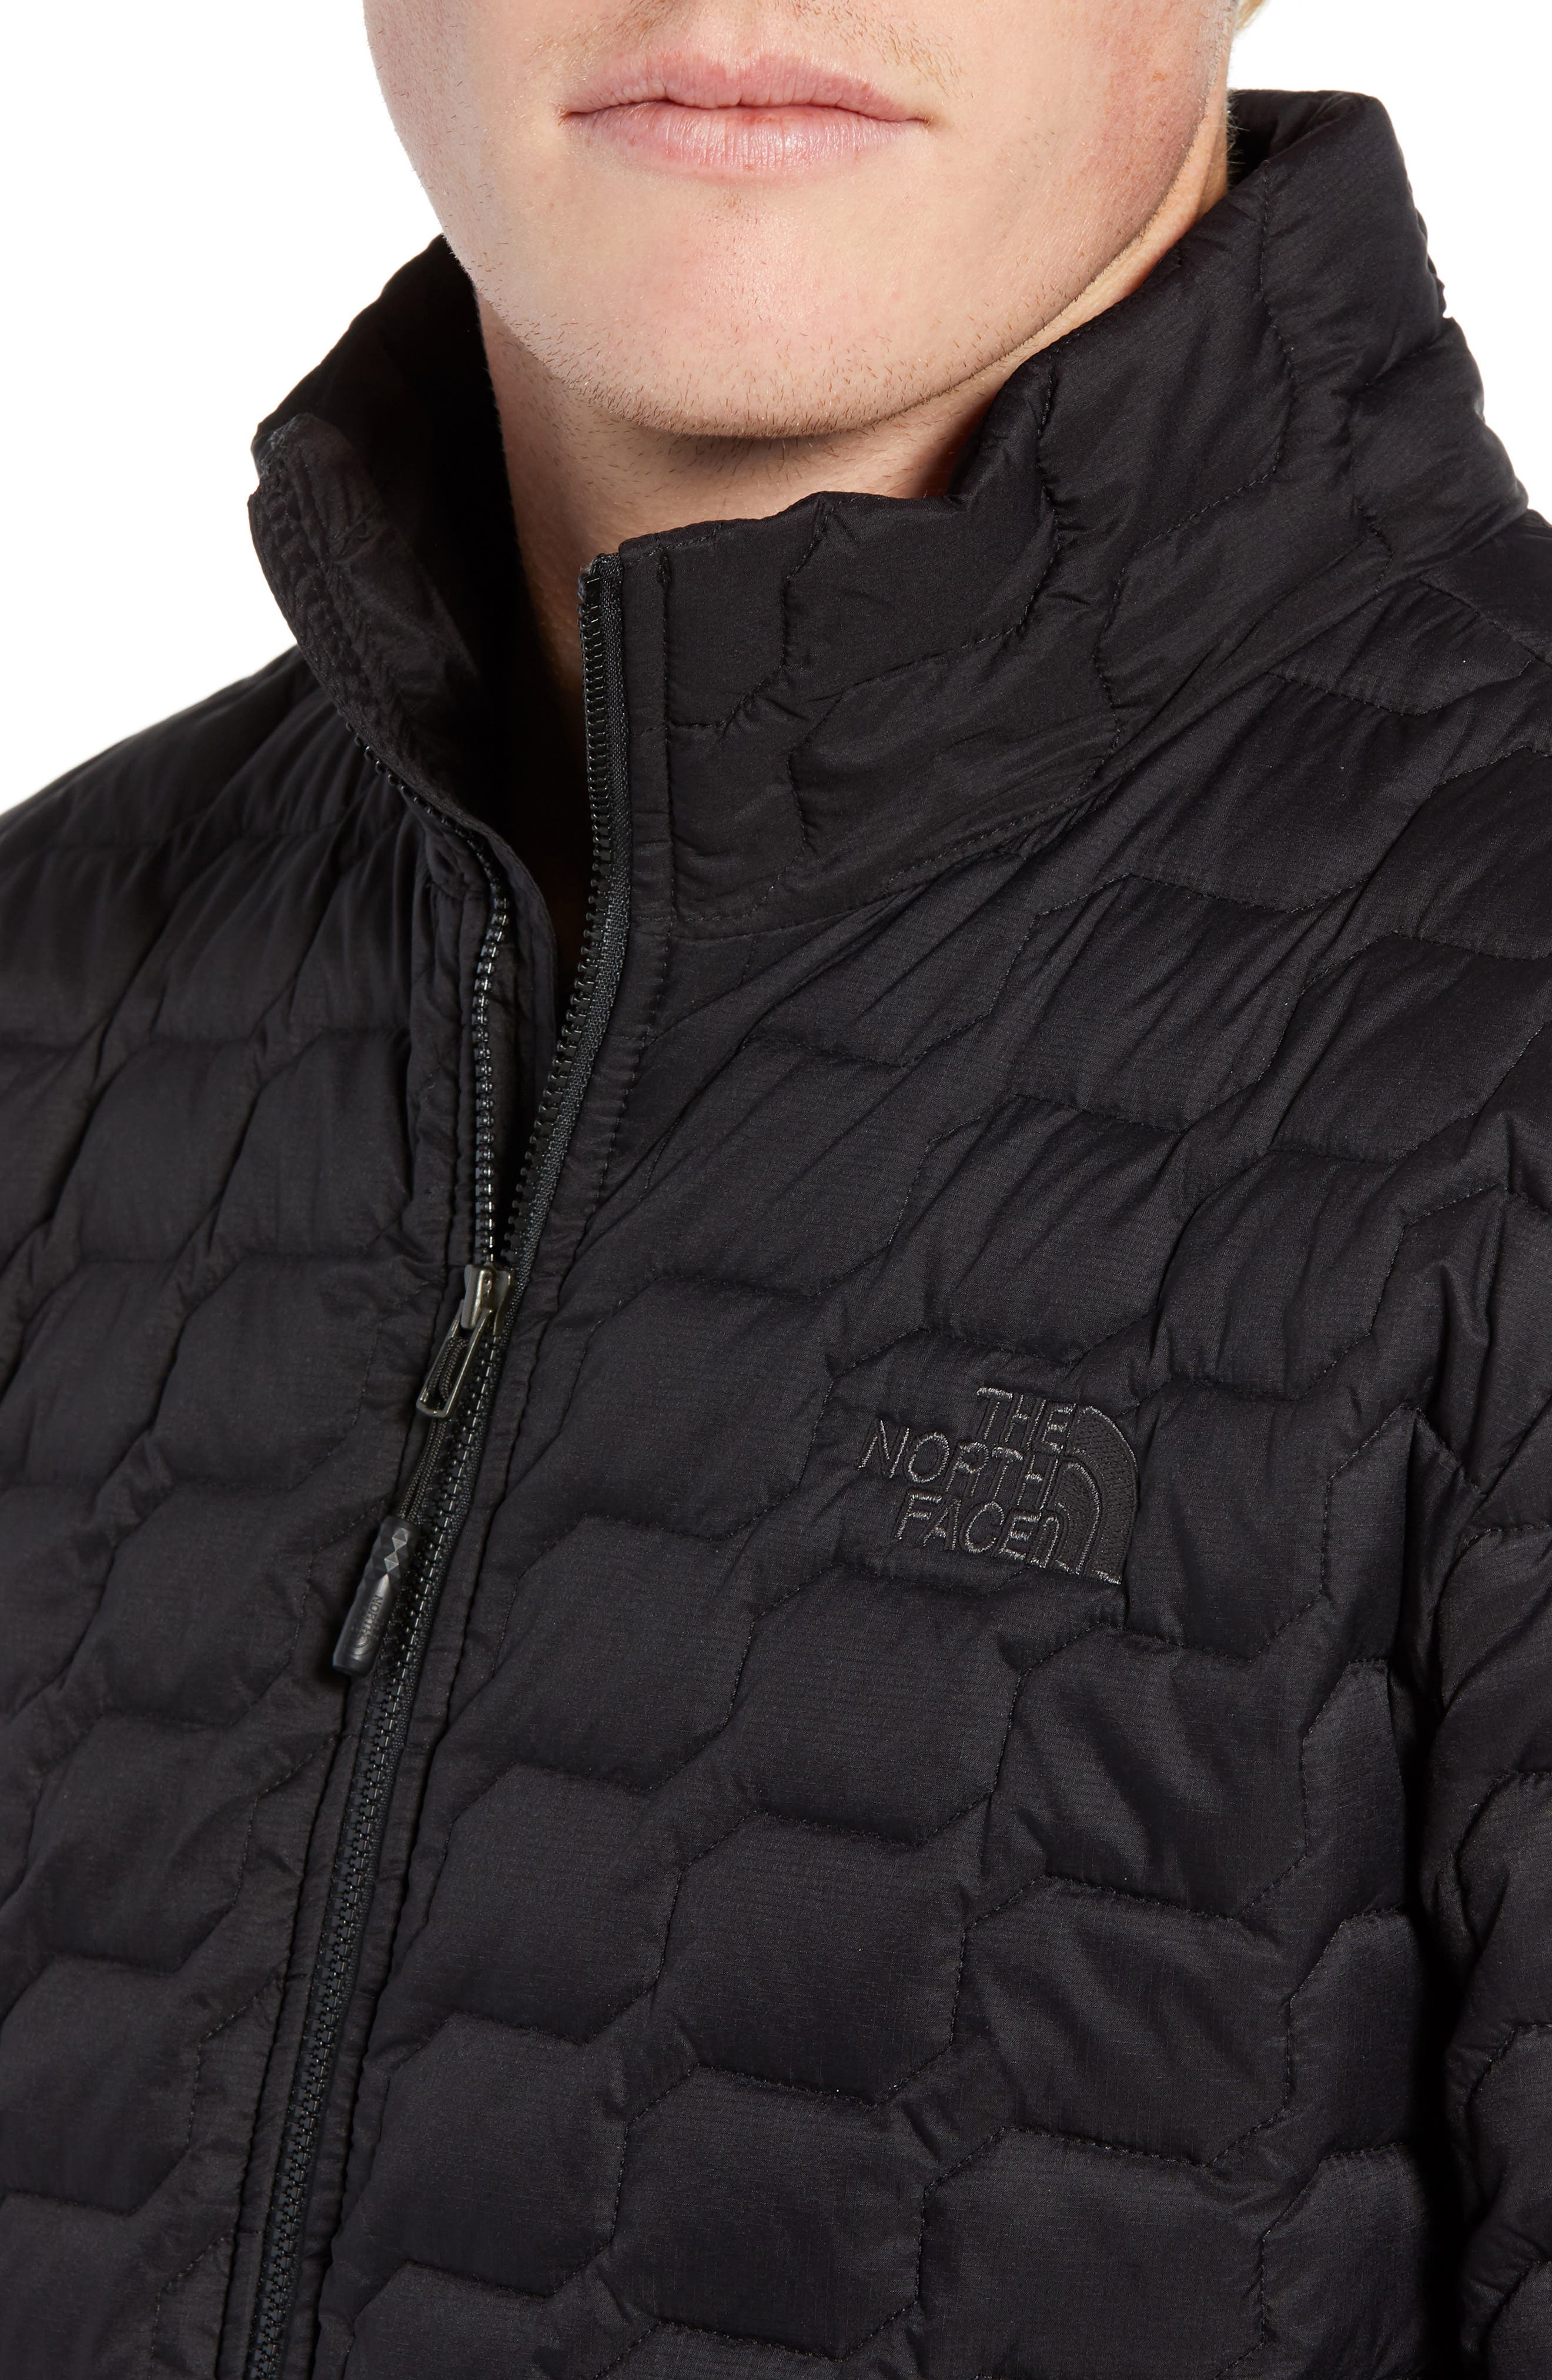 THE NORTH FACE, ThermoBall<sup>™</sup> Jacket, Alternate thumbnail 5, color, 001